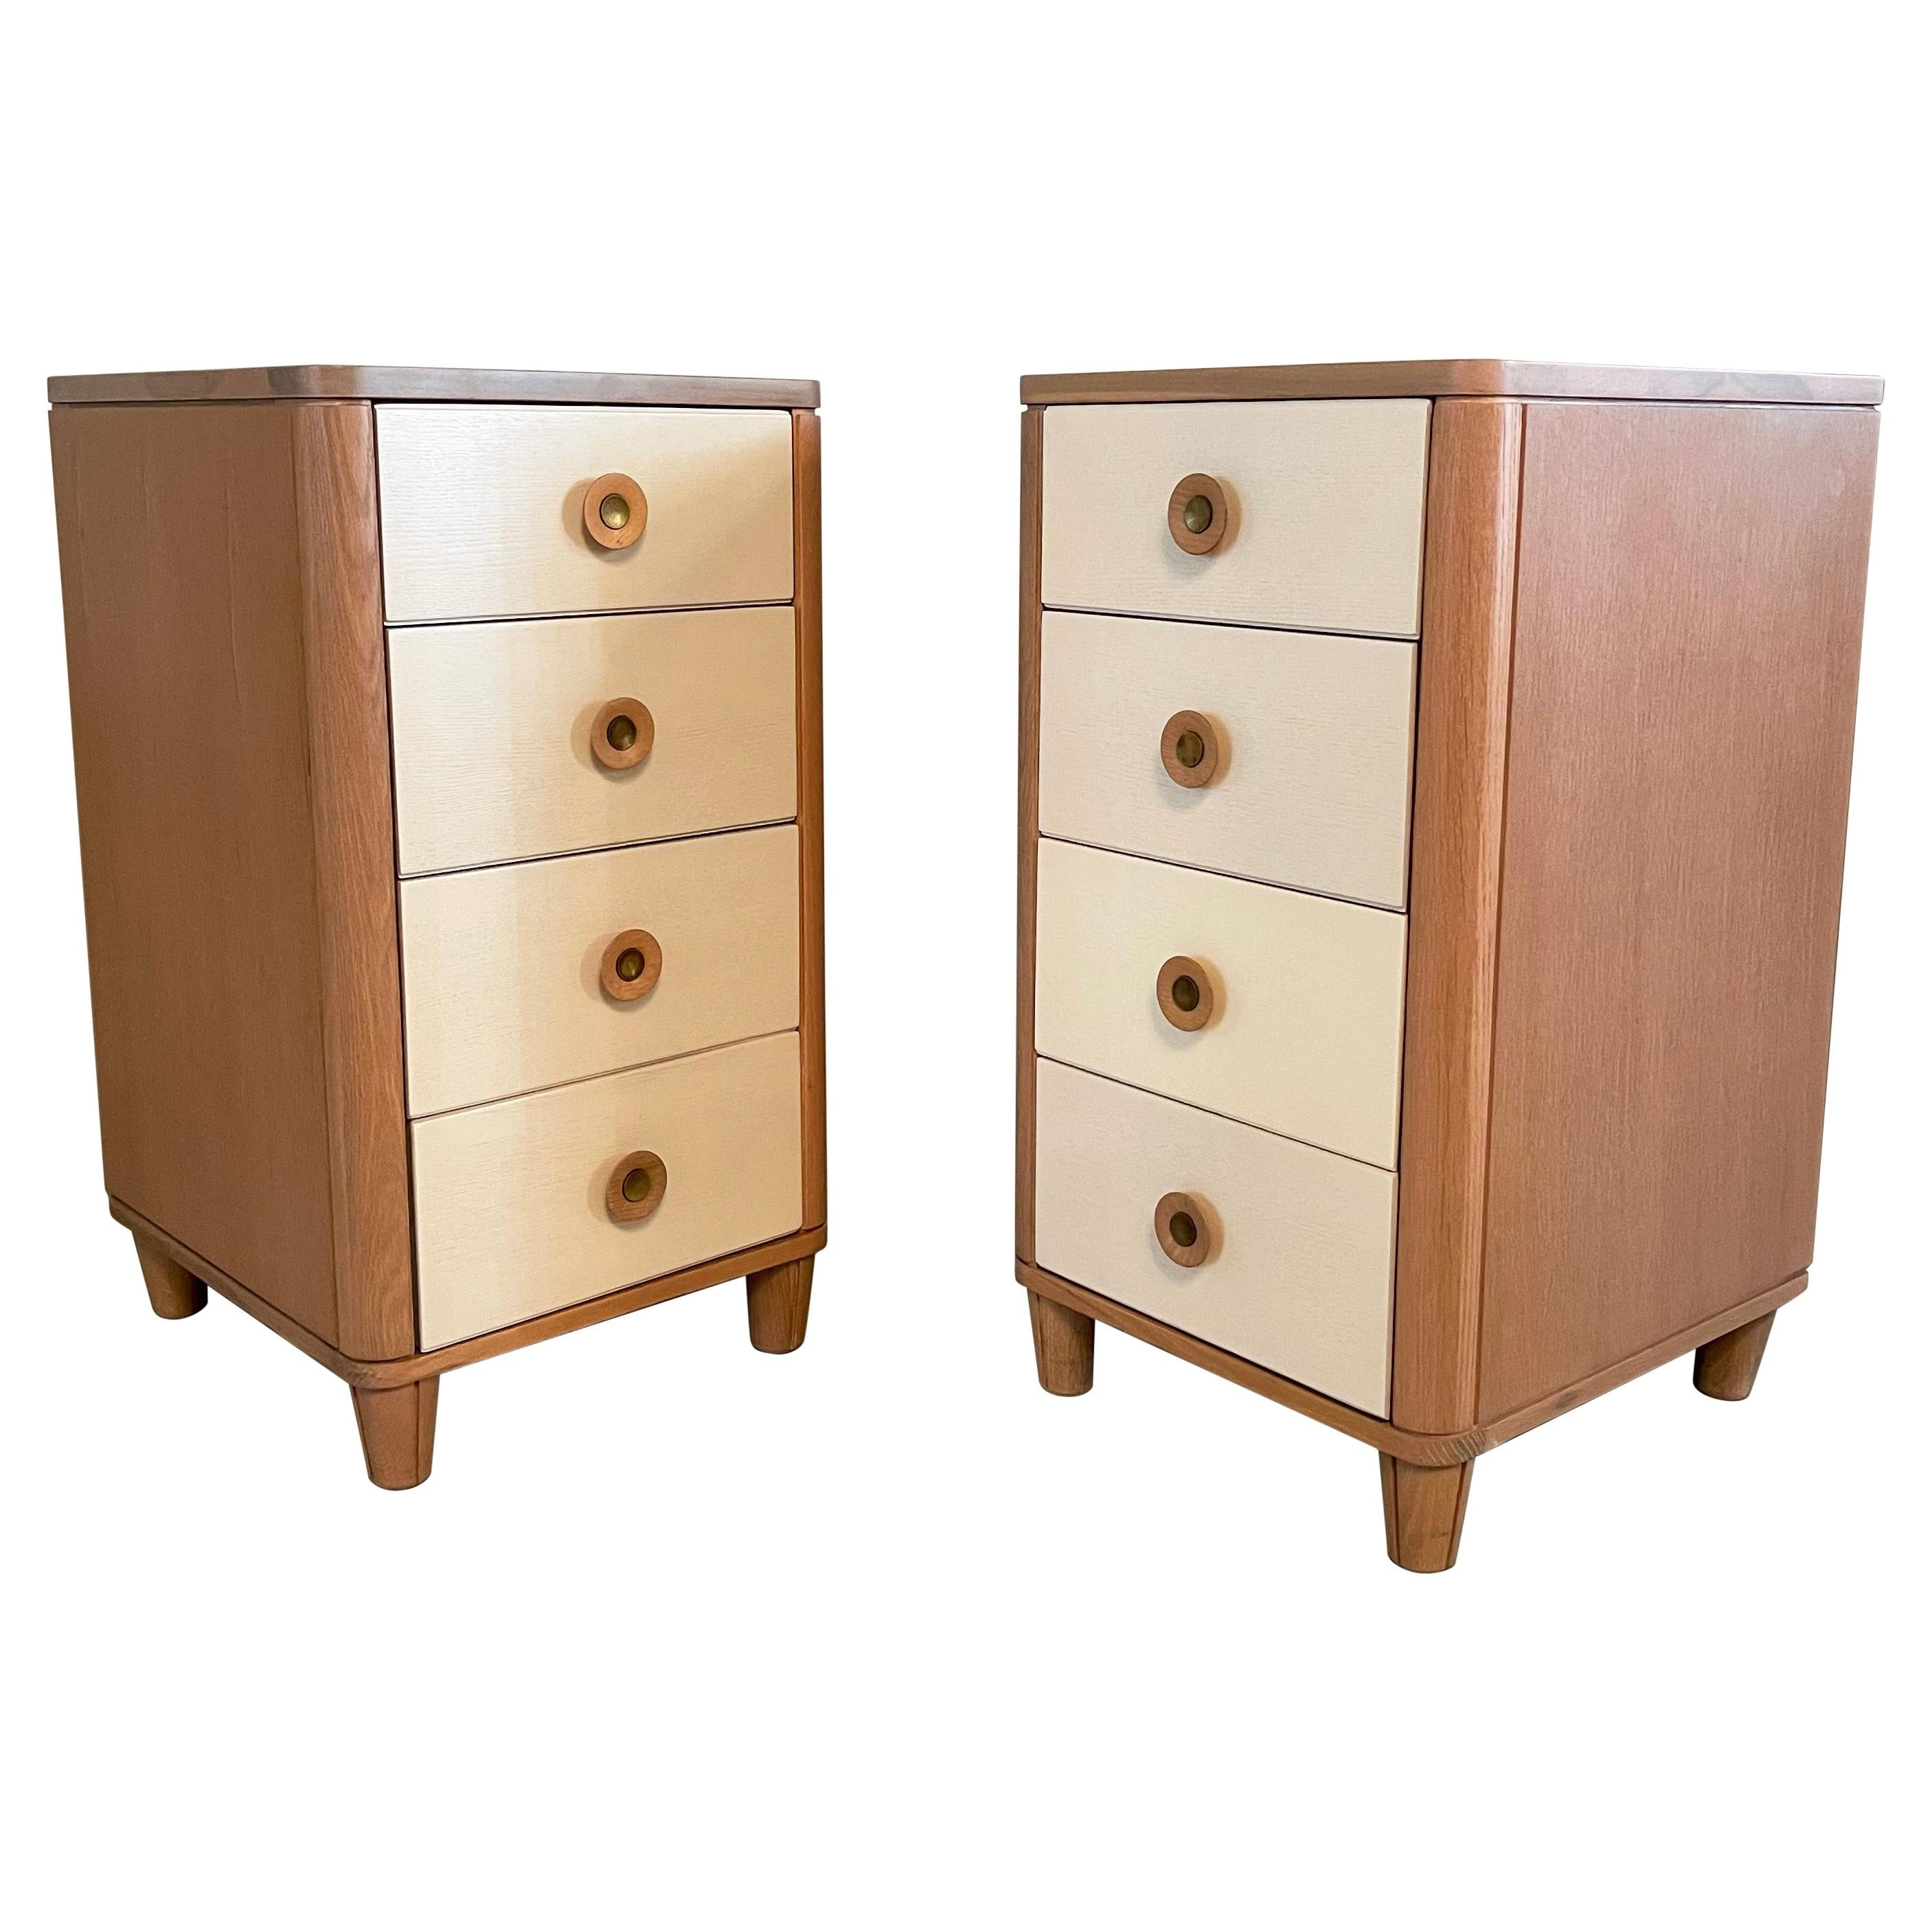 Pair of Dressers by Raymond Loewy for Mengel